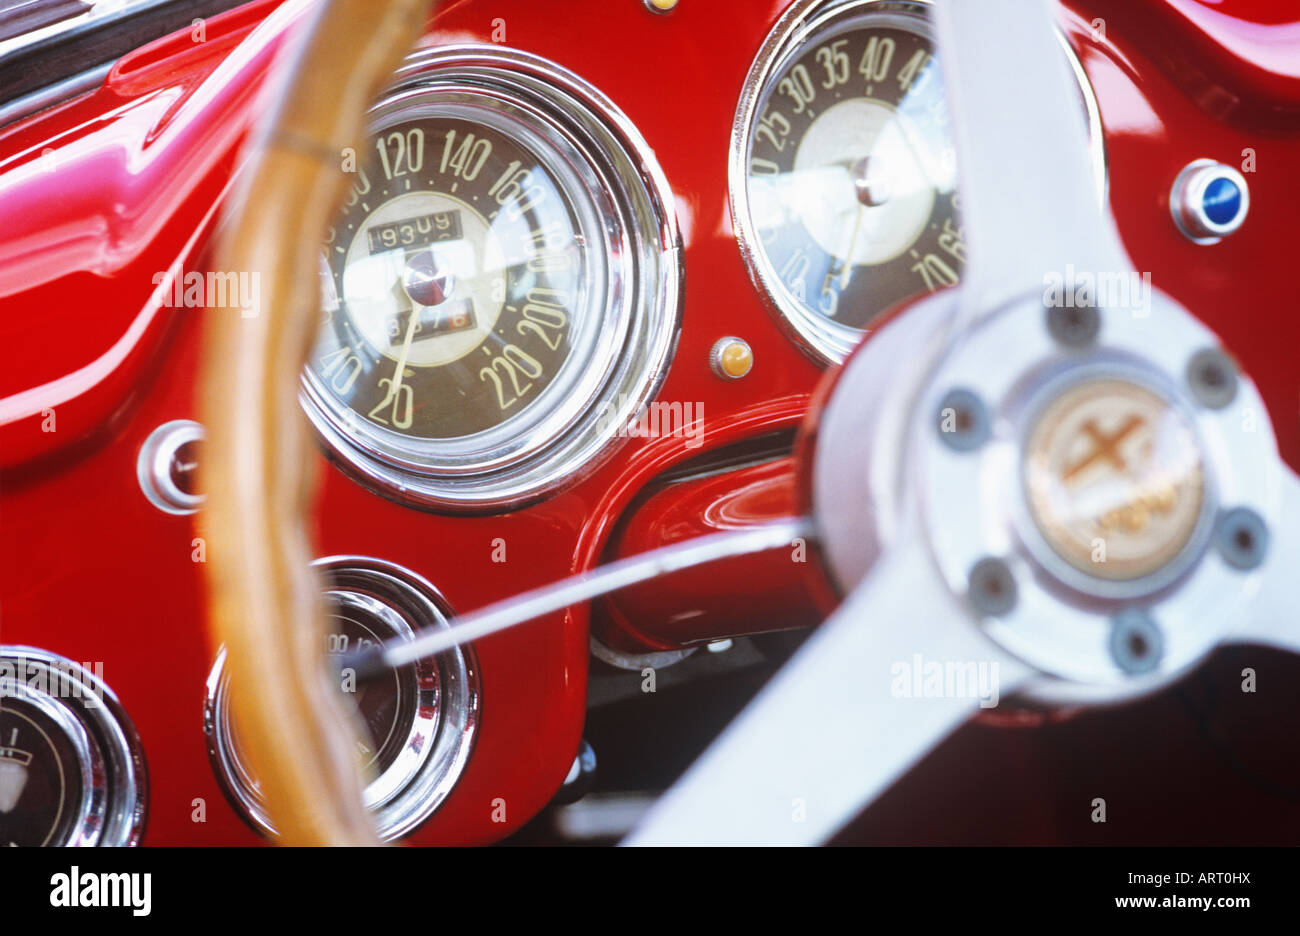 Alfa Romeo Lights Stock Photos Images Alamy Sdometer Wiring Diagram Interior Image